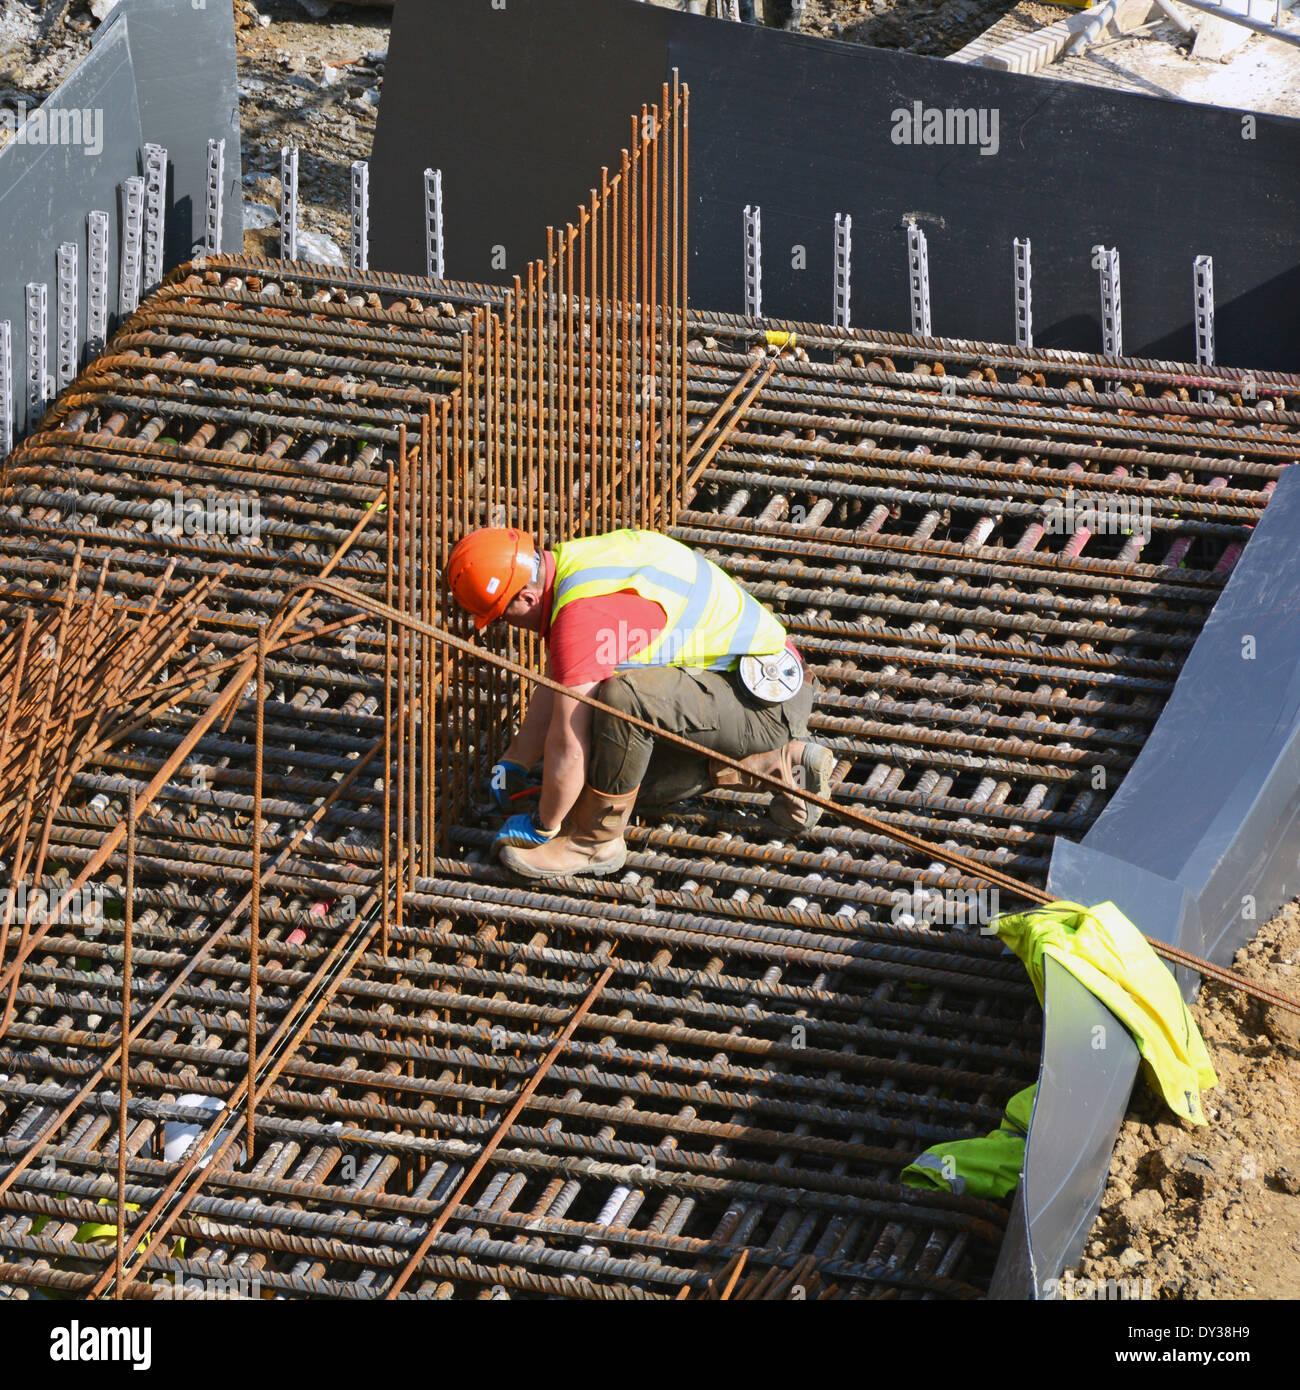 Construction site steelfixer tying steel reinforcement cage together as part of foundations for new building London England UK - Stock Image